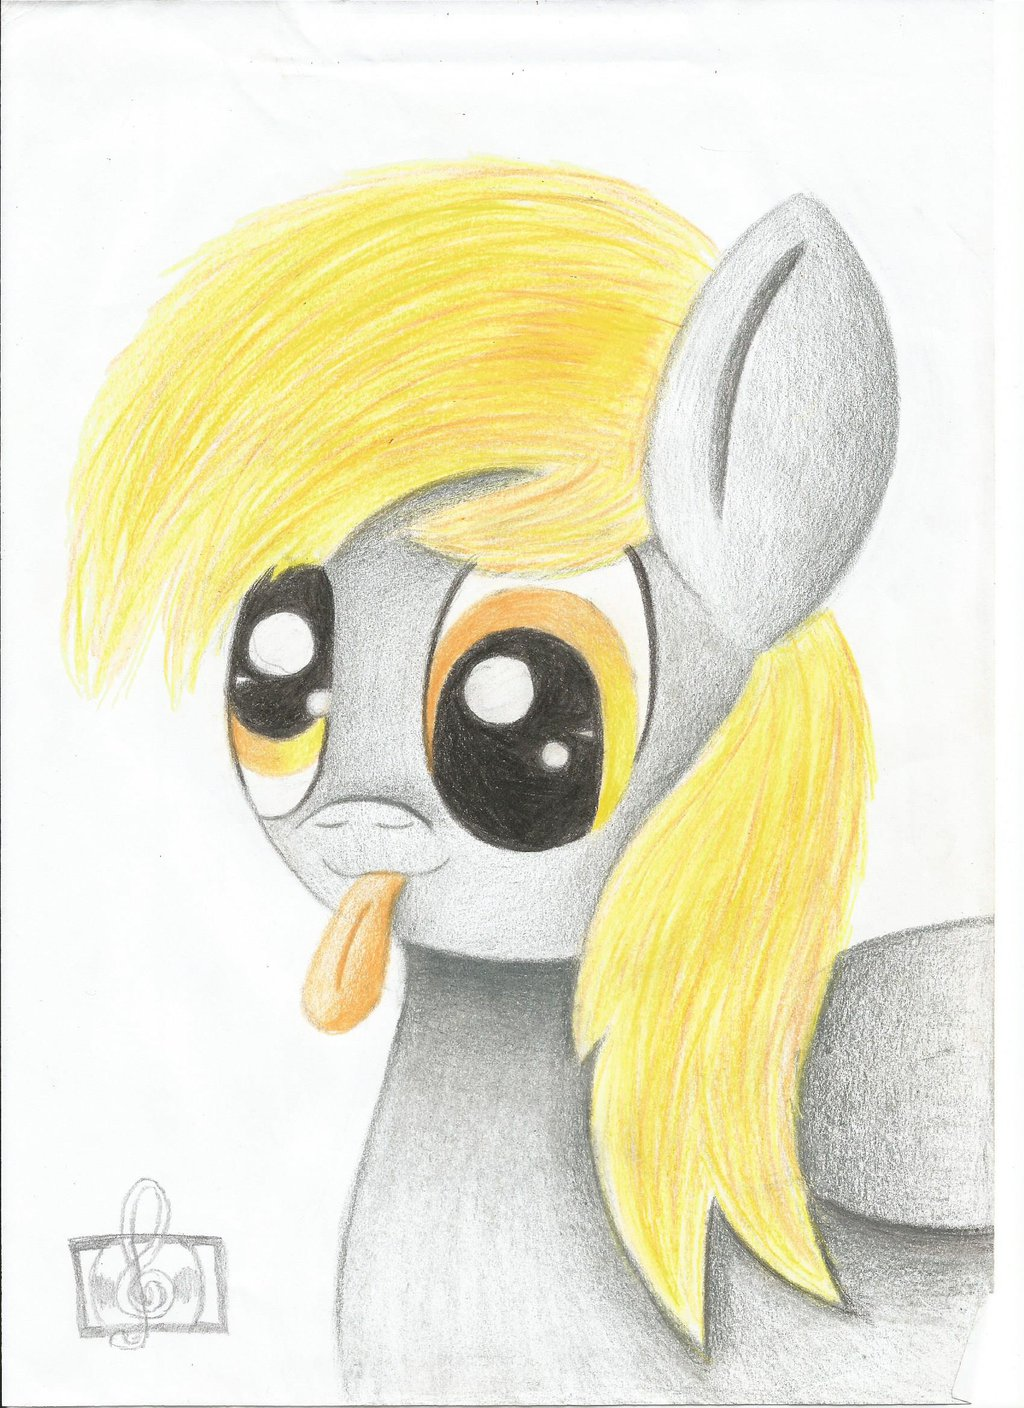 Drawn paper mlp In by  in paper